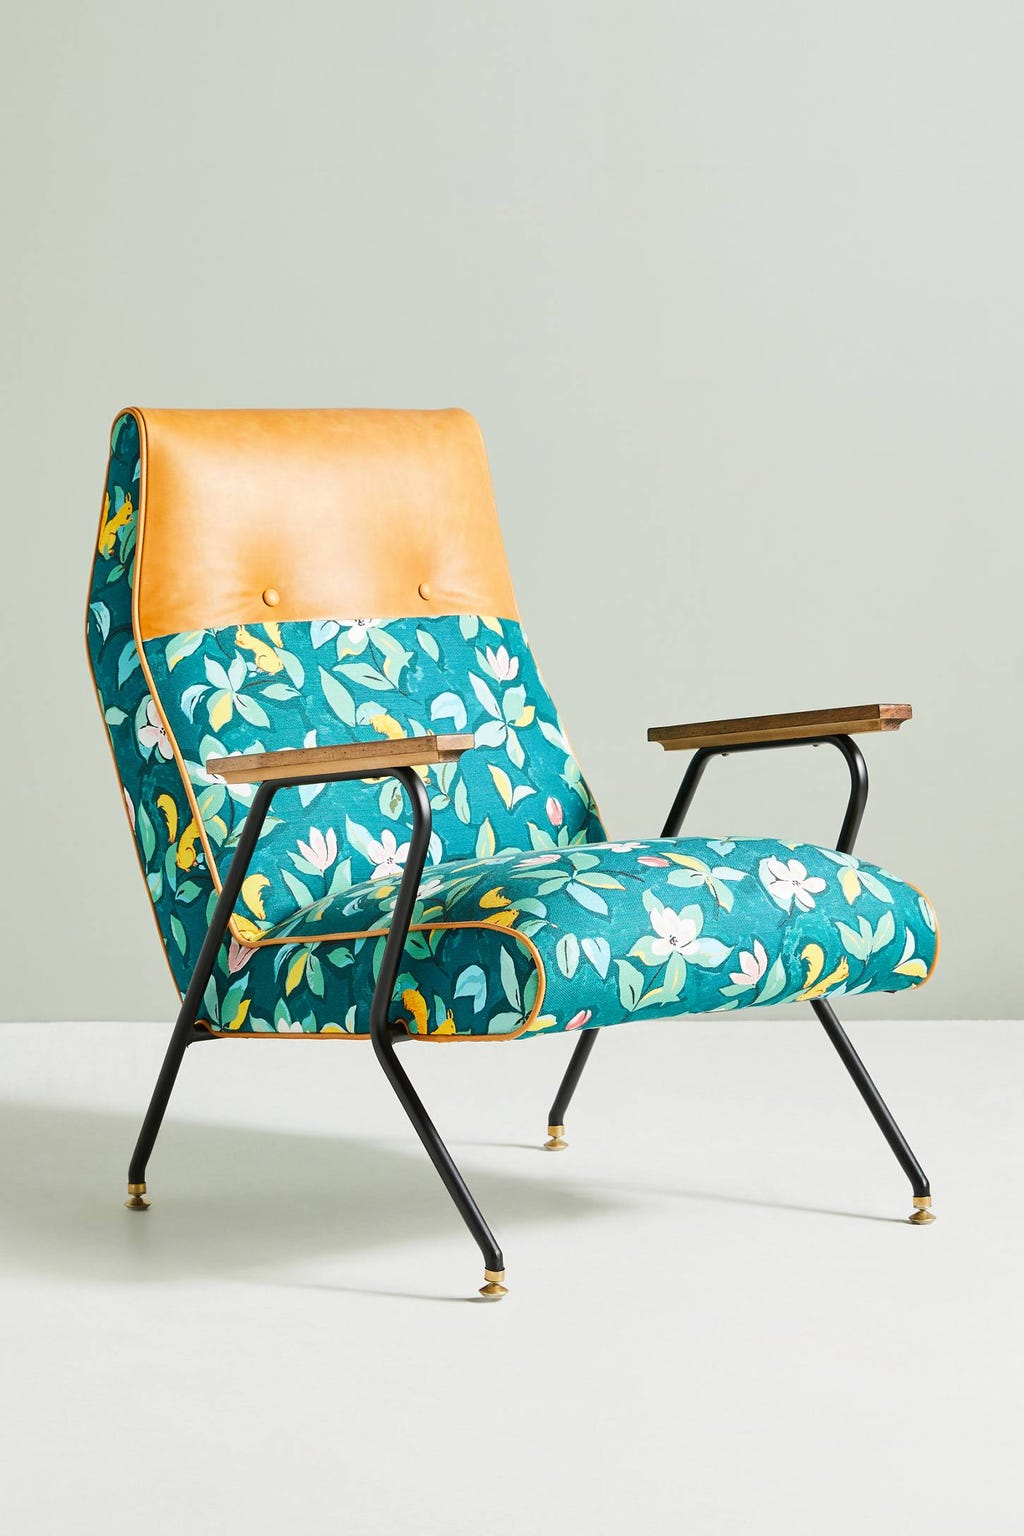 Sensational Anthropologies New Home Collection Is Royal Approved Inzonedesignstudio Interior Chair Design Inzonedesignstudiocom